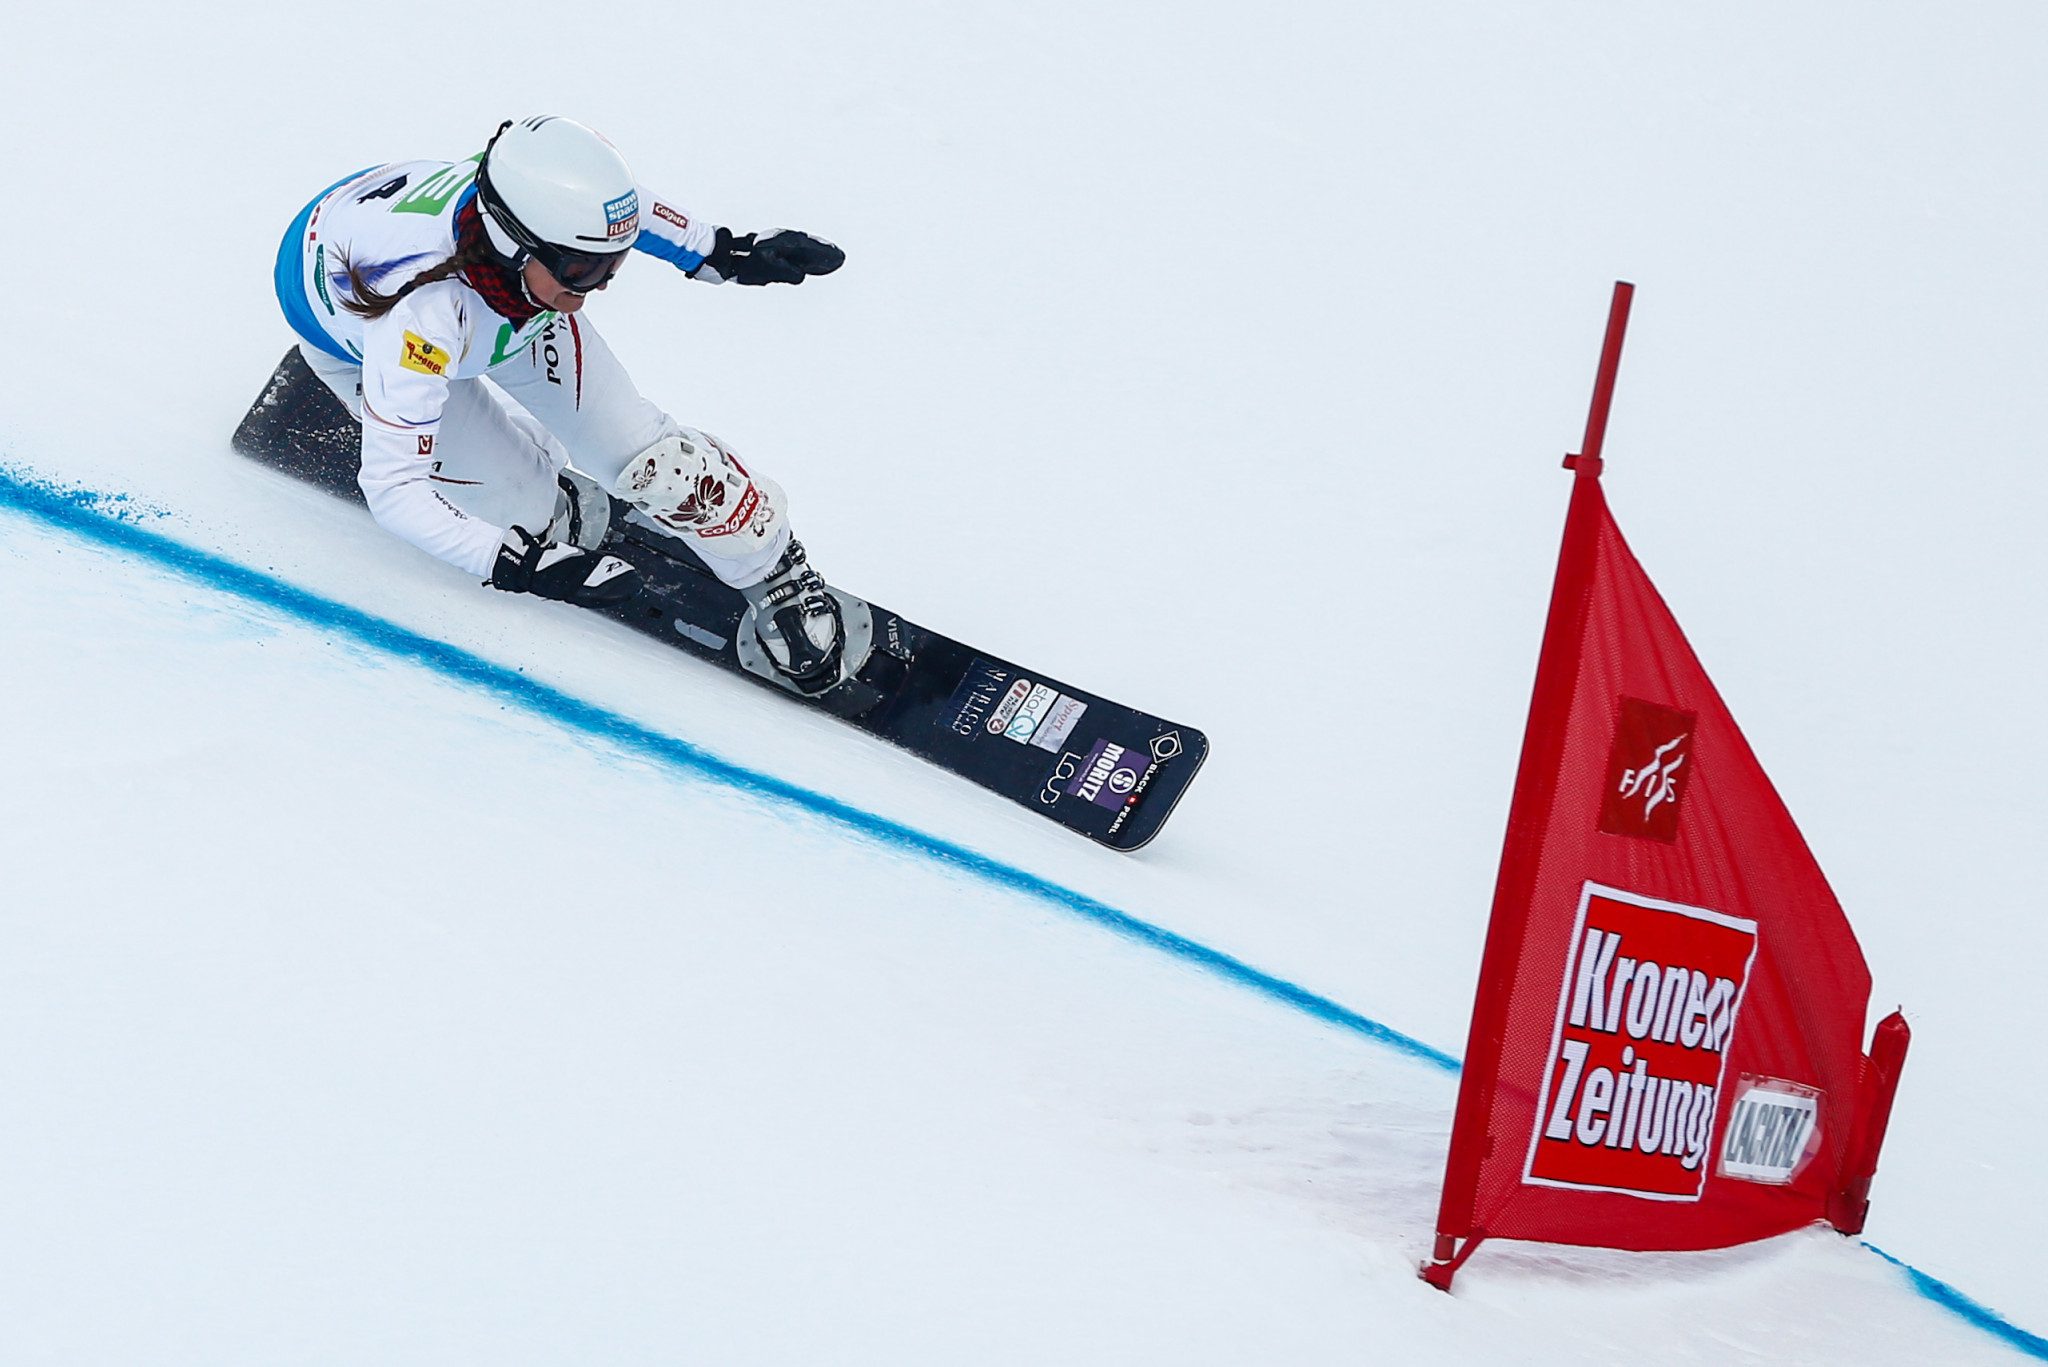 Riegler wins FIS Snowboard World Cup parallel slalom event in Bad Gastein at 45